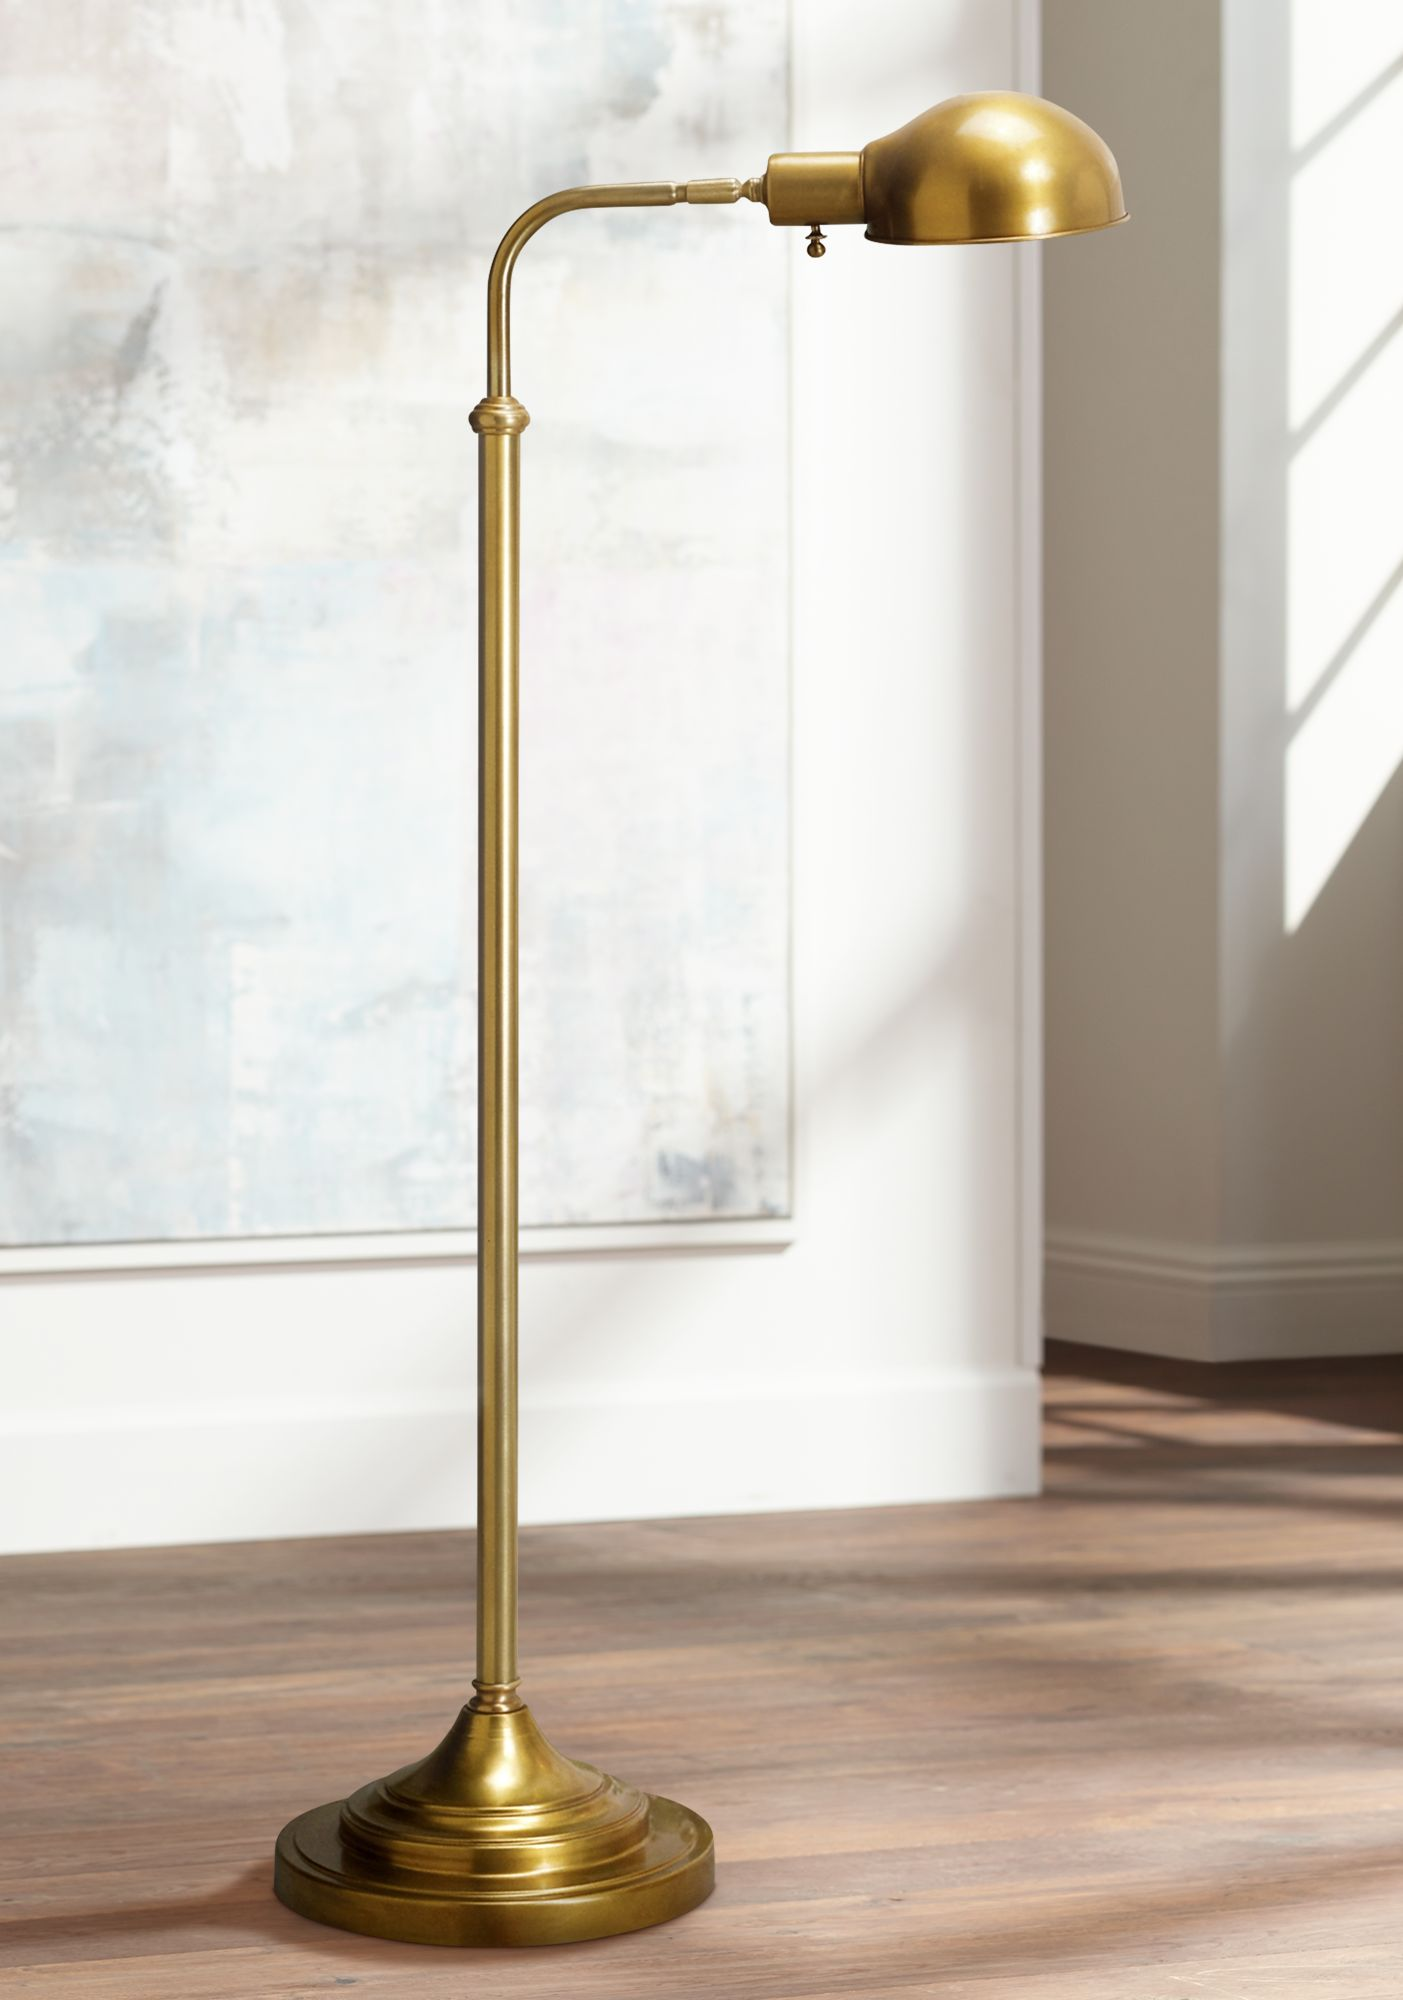 Superior Robert Abbey Kinetic Antique Brass Pharmacy Floor Lamp